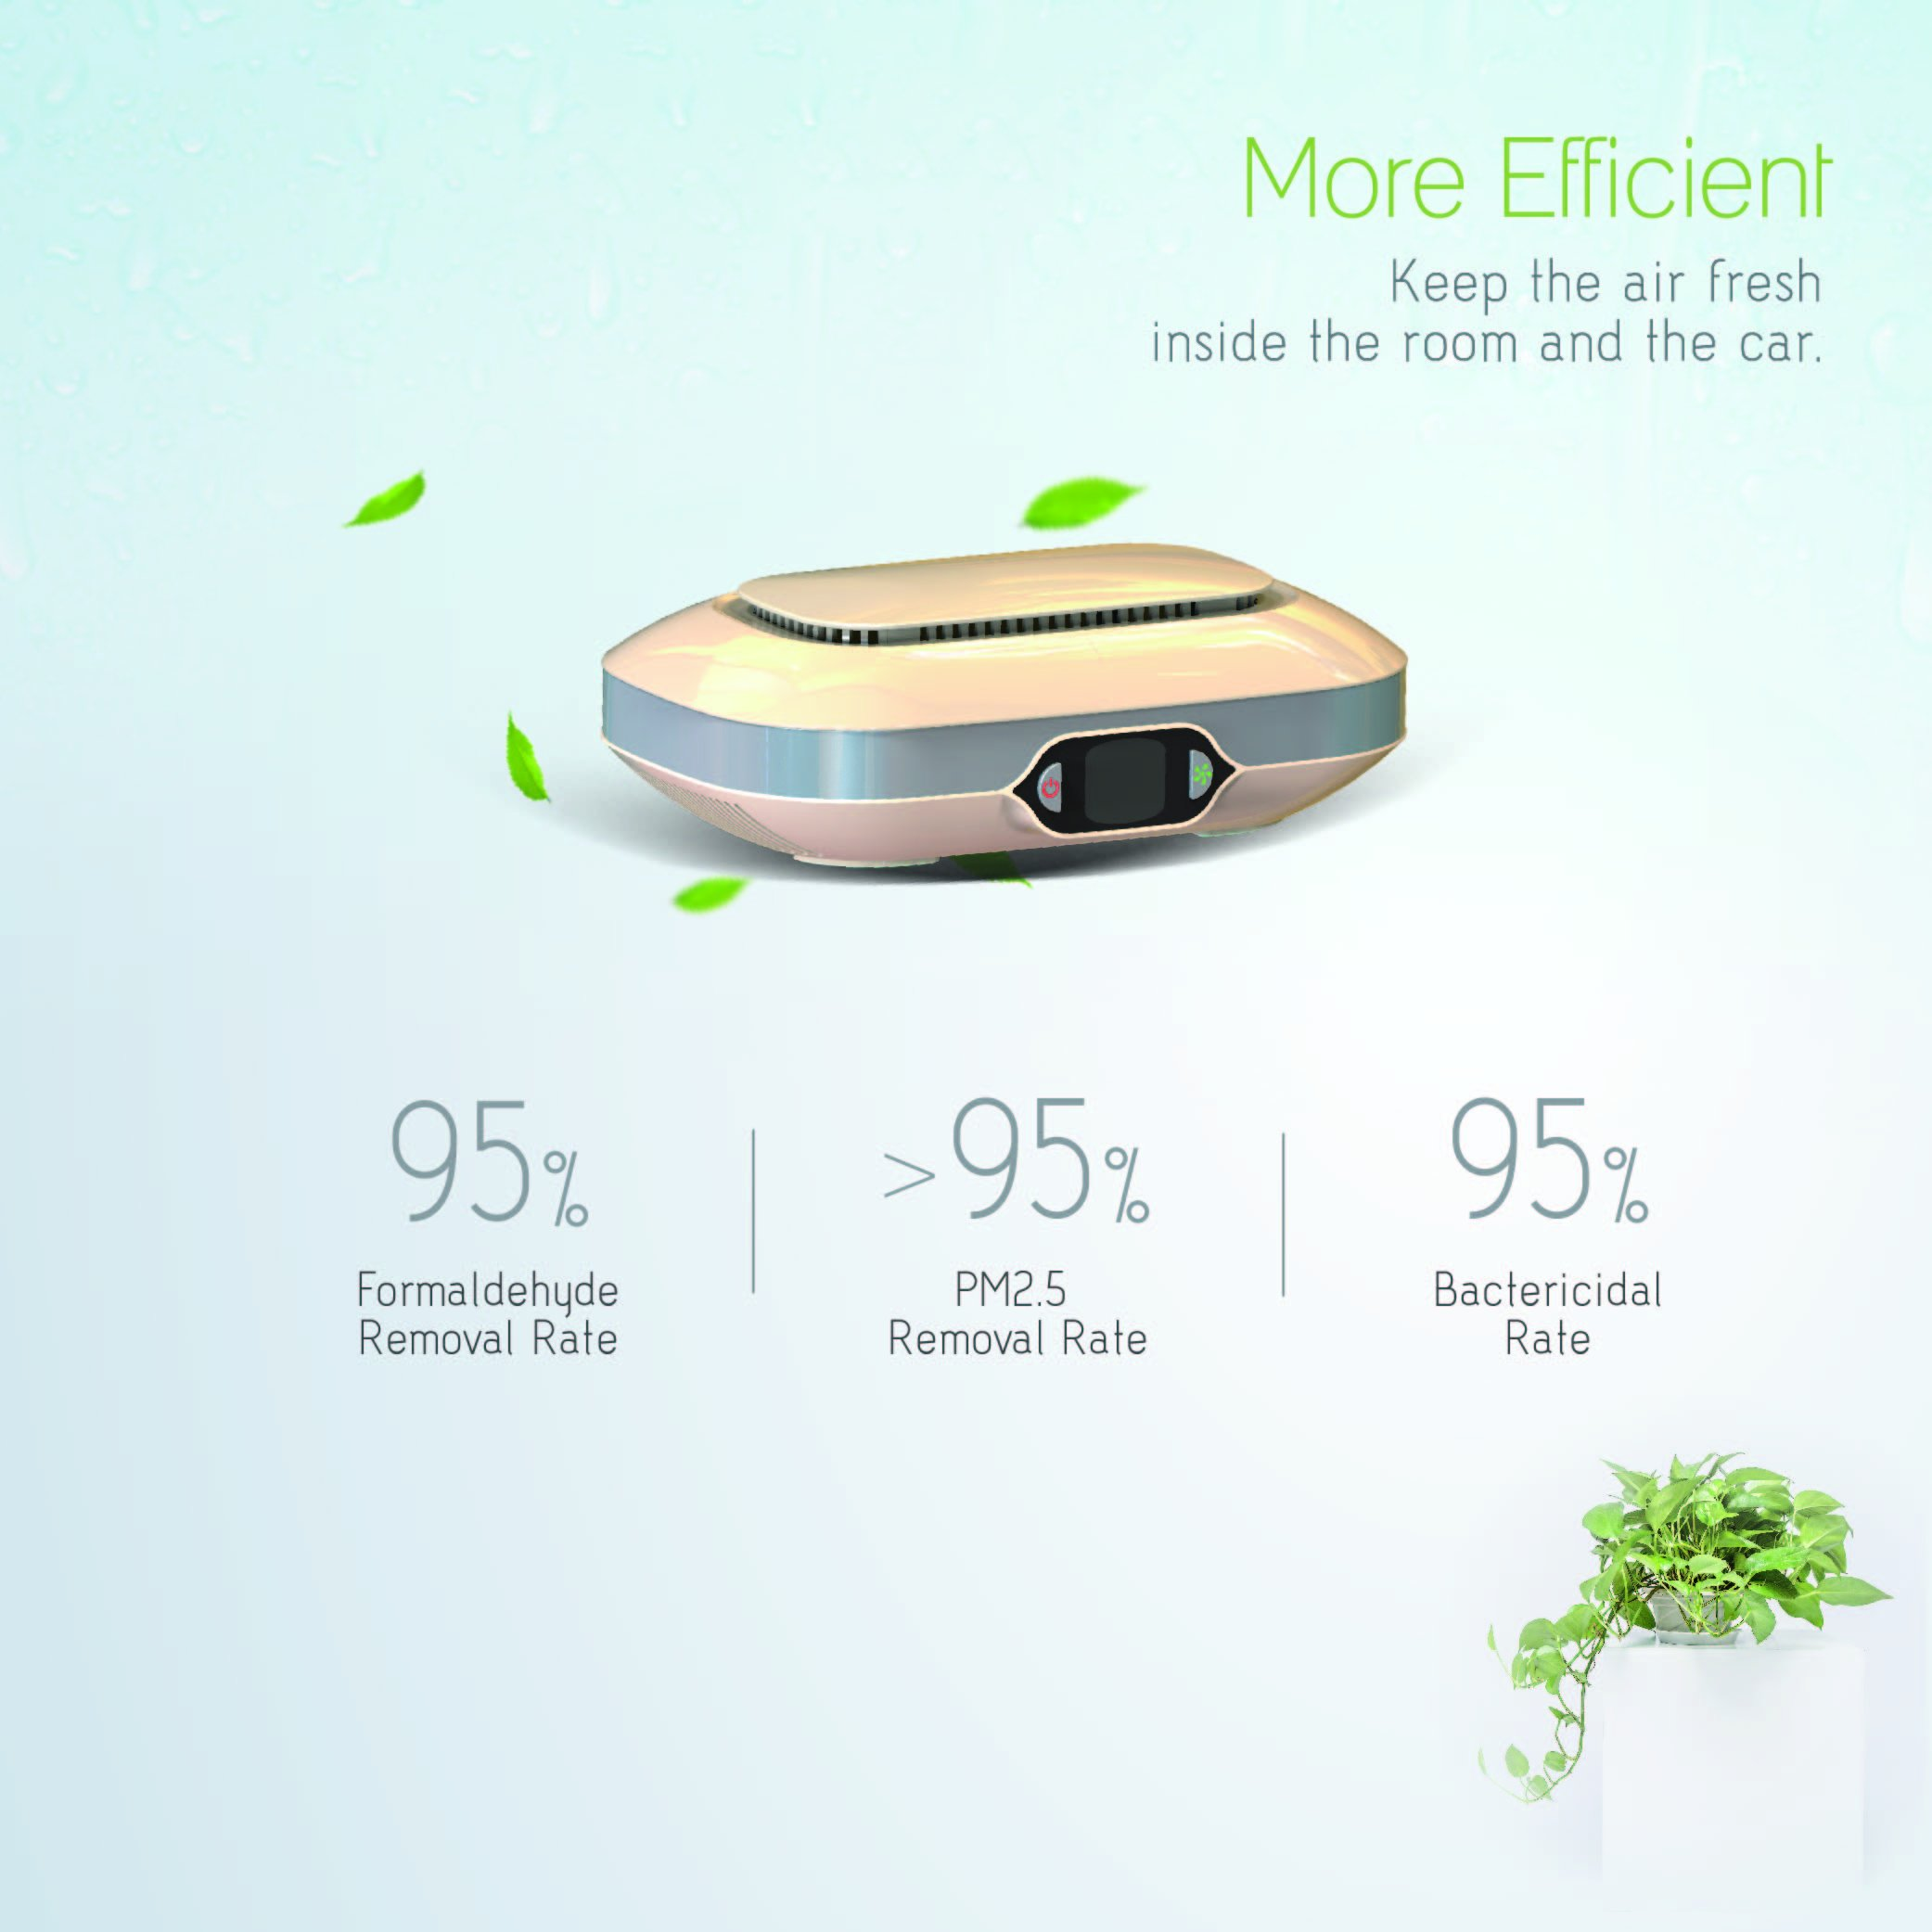 Portable Car Air Purifier True HEPA Air Cleaner Formaldehyde Concentration Temperature,Humidity Display, Remove Smoke,Pollen for Room,Office,Hotel,Apartment,Baby Room,Elderly and Disable People